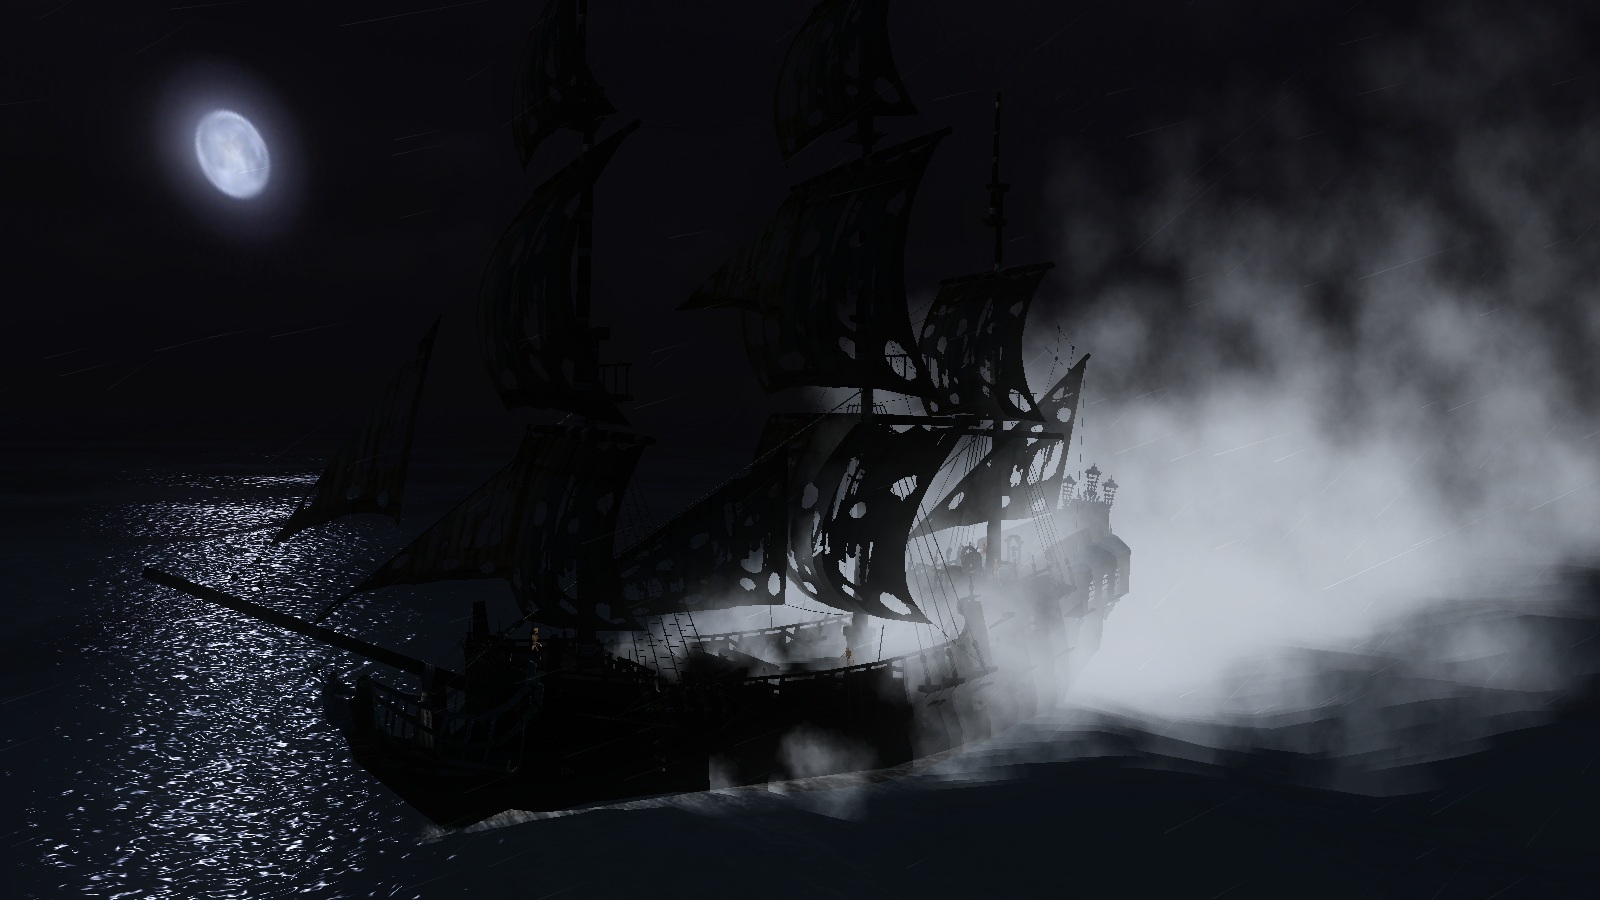 pirates of the caribbean new horizons download